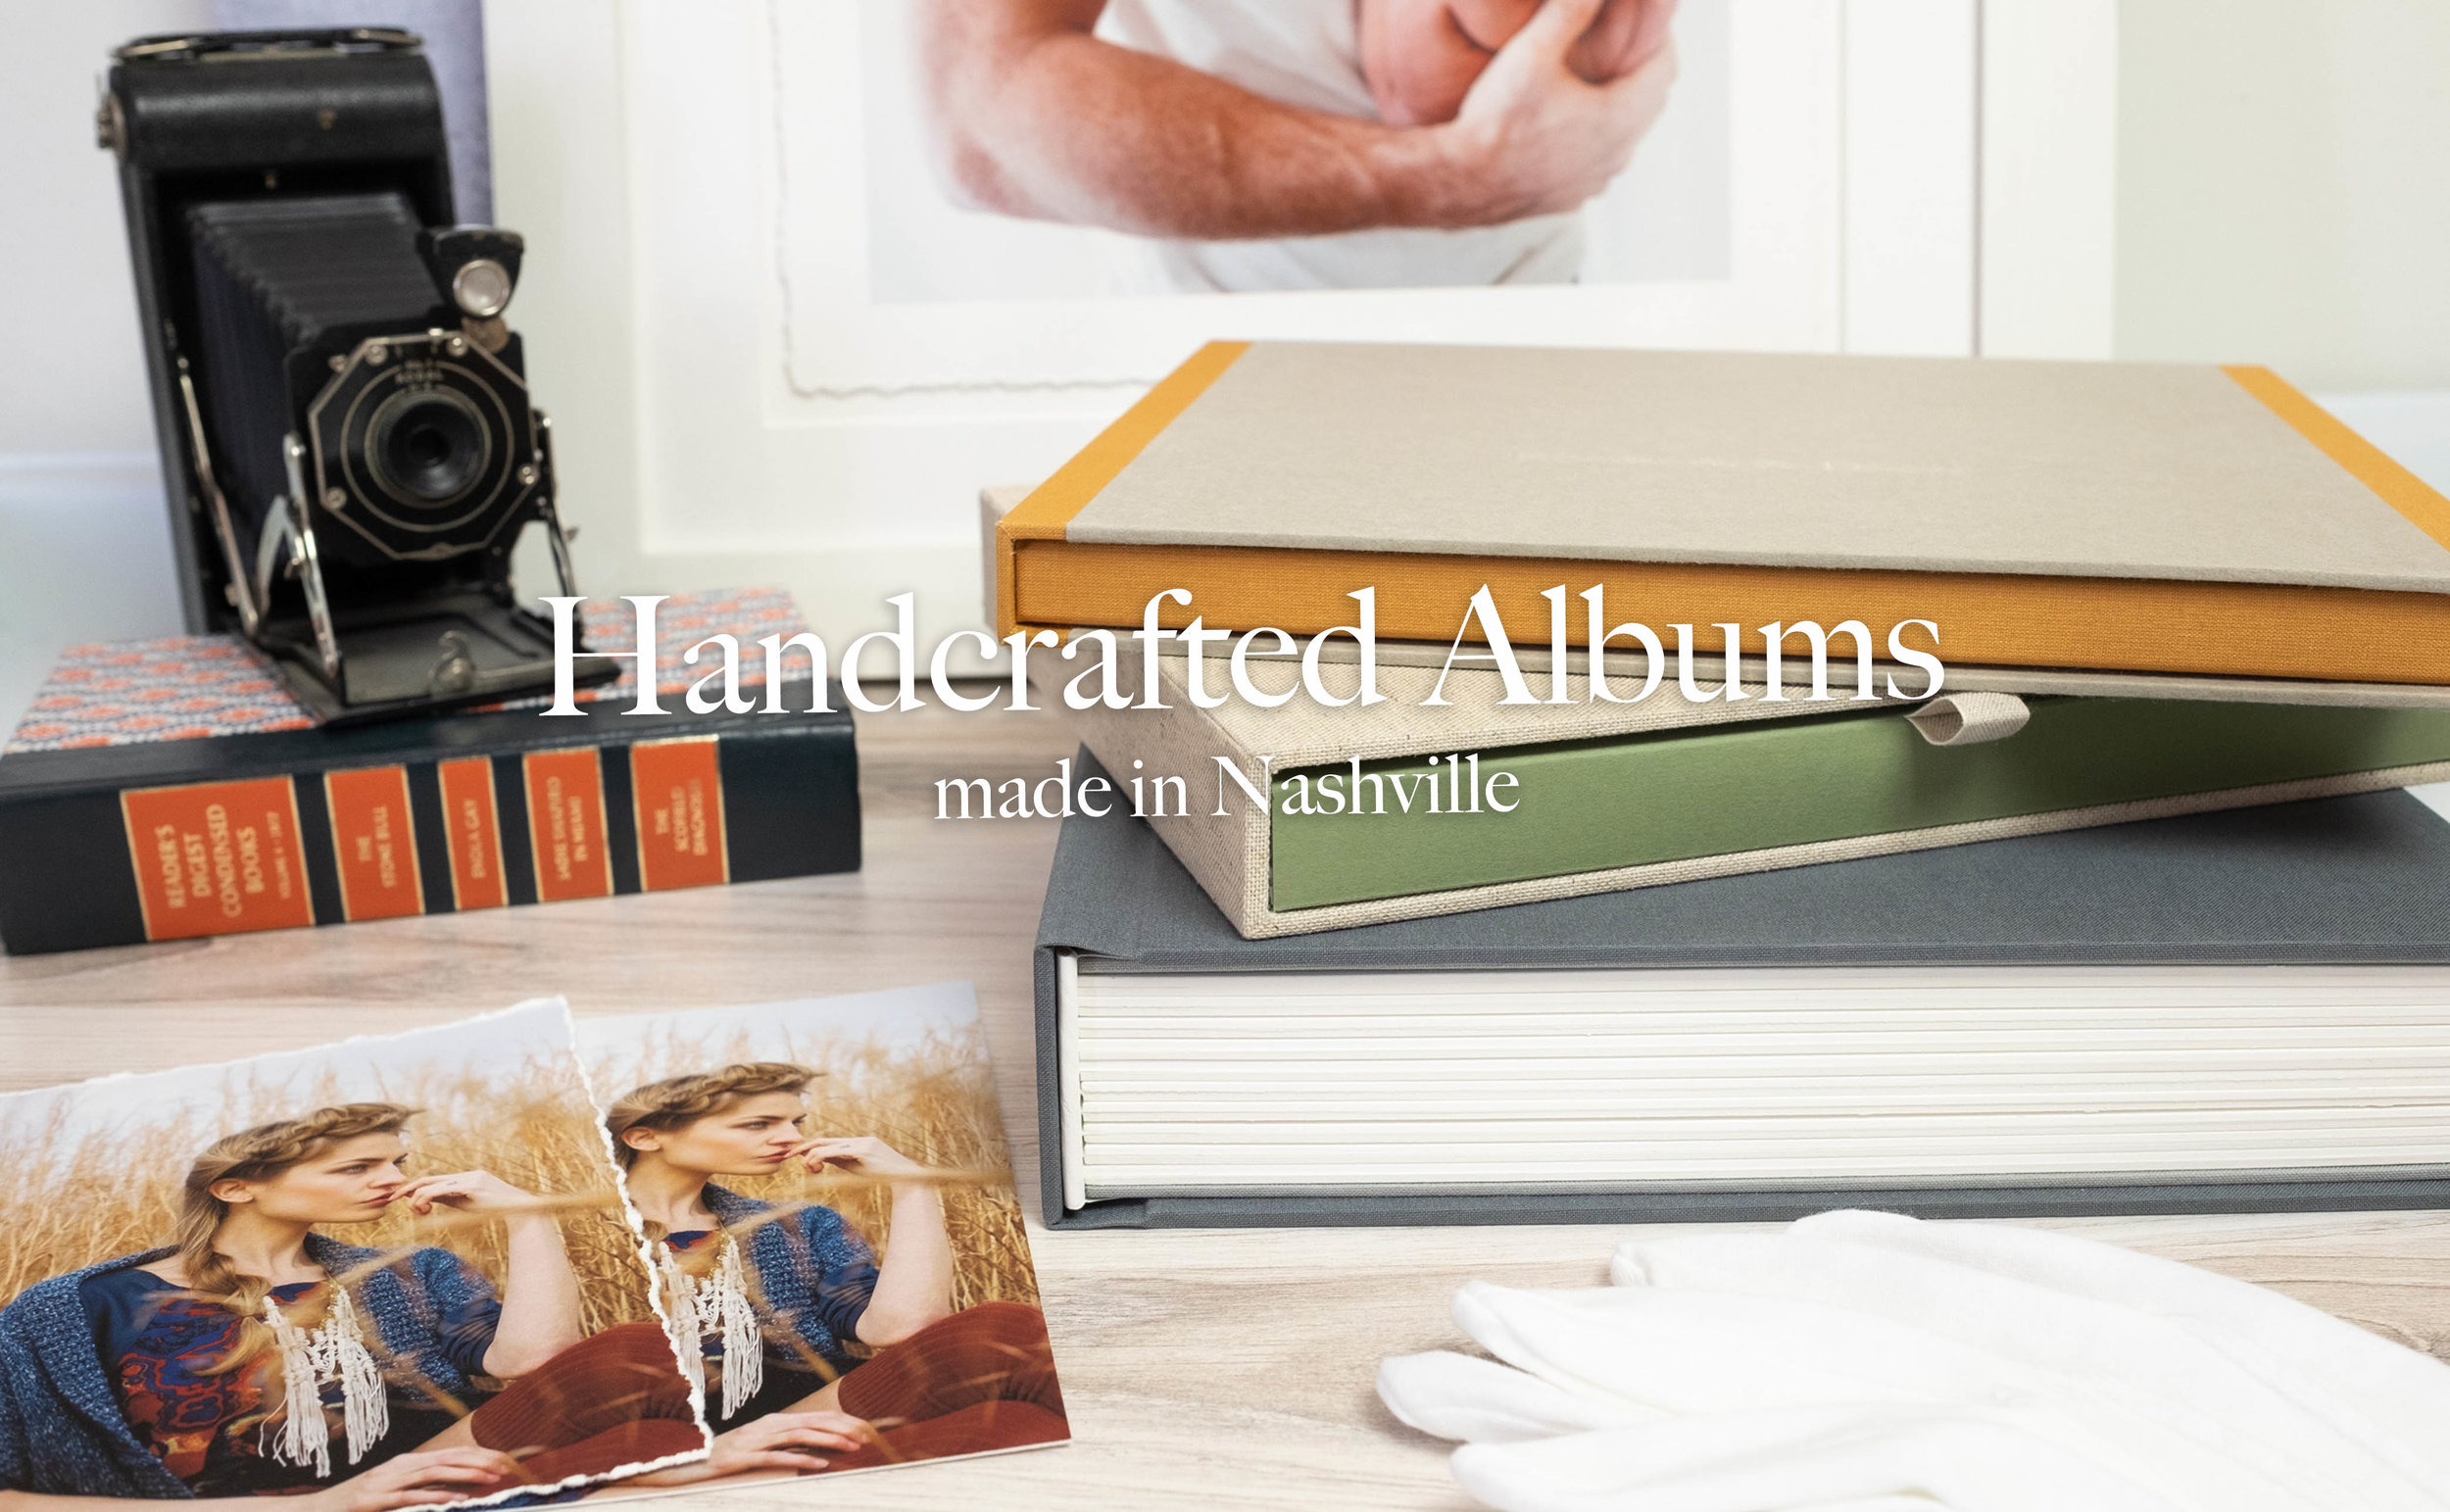 Handcrafted Albums.jpg